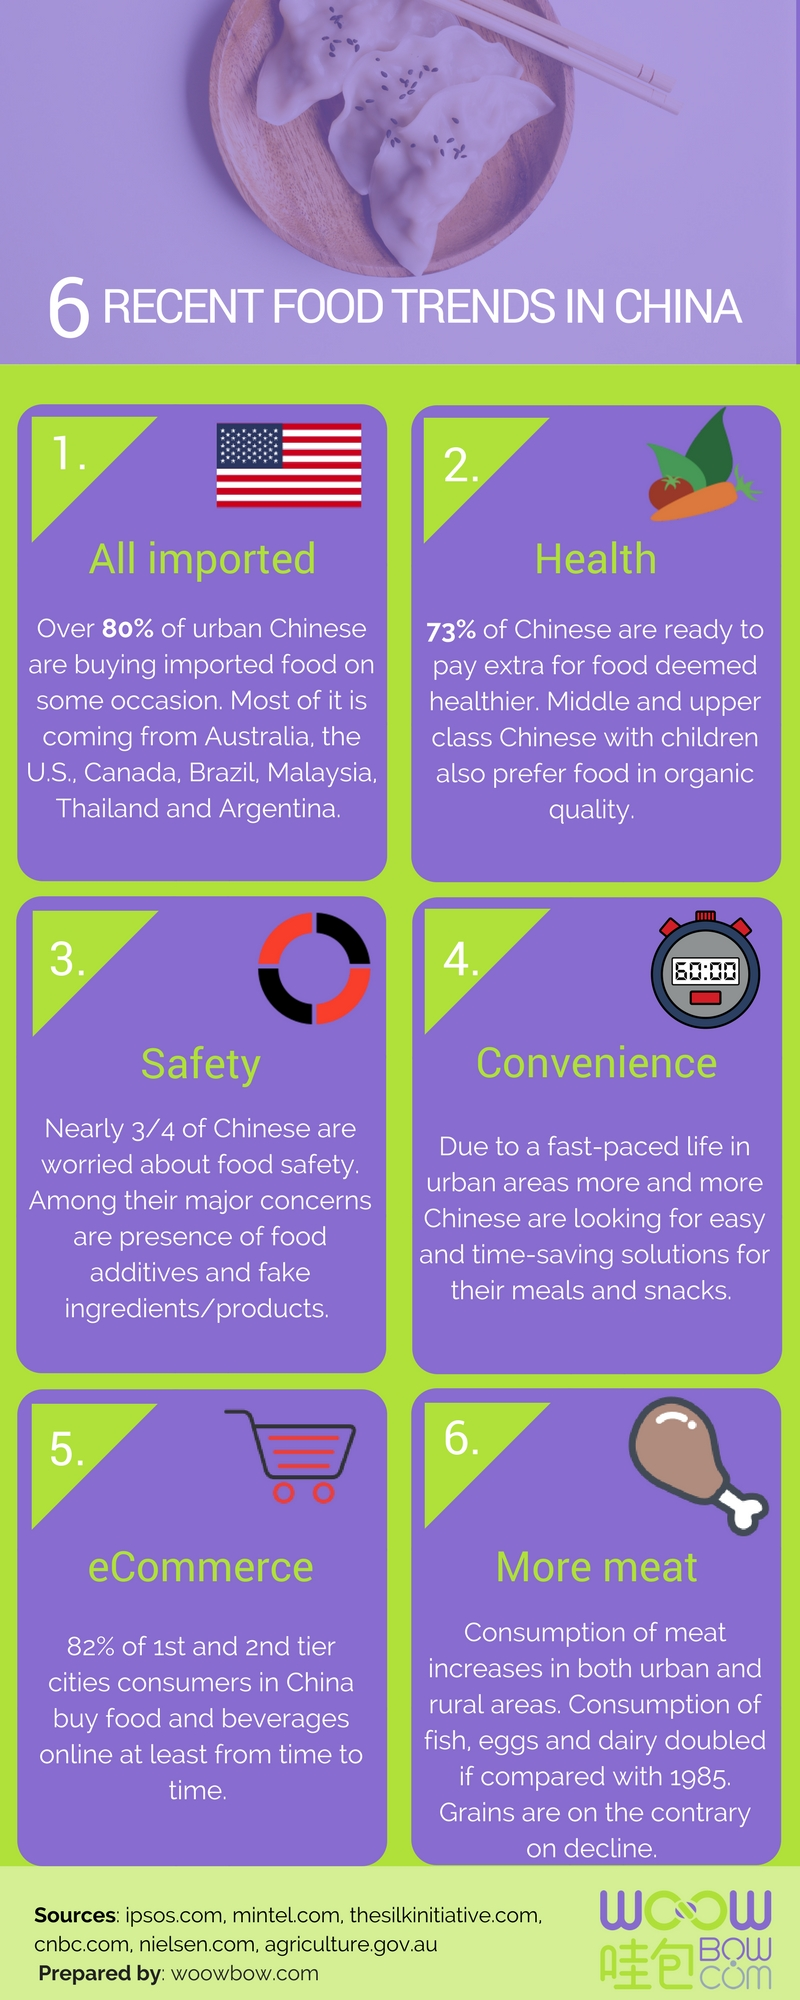 6 recent food trends in china info-graphic 2017